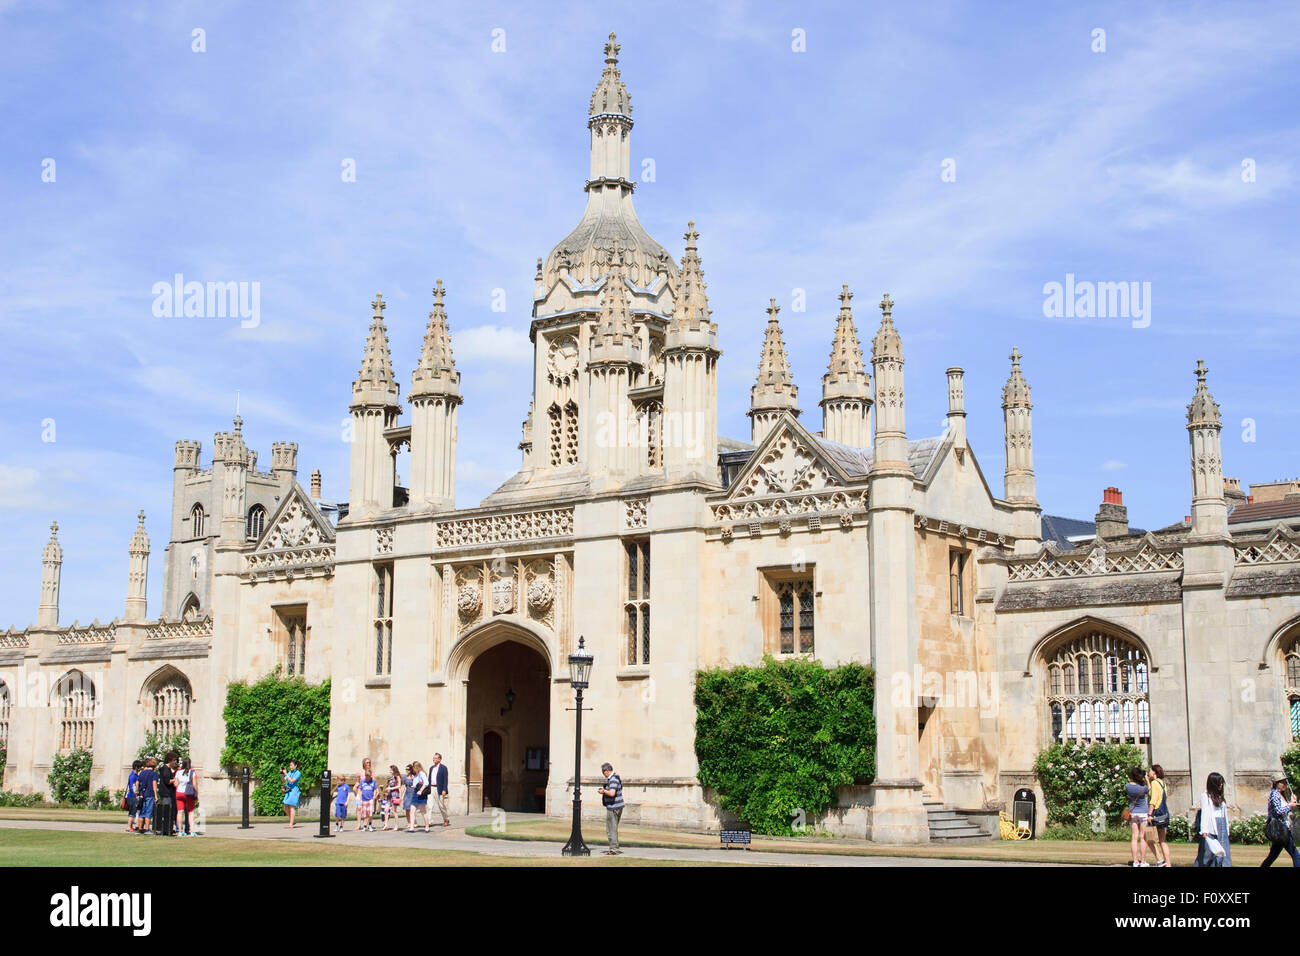 East side of Front Court, the entrance to King's College, Cambridge, England - Stock Image